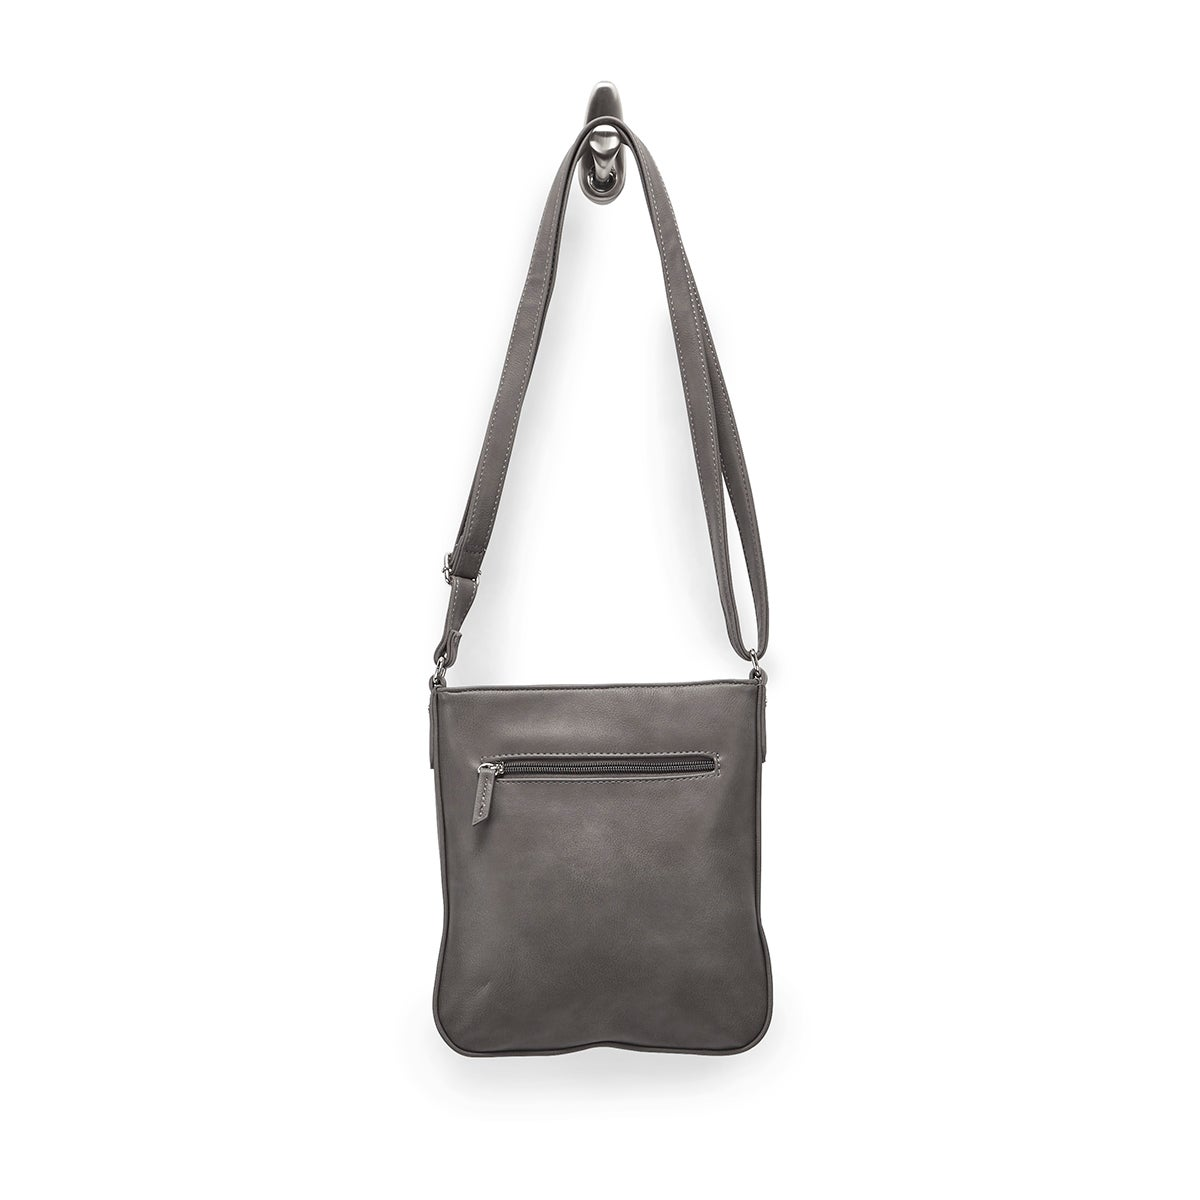 Lds Roots73 grey north south cross body